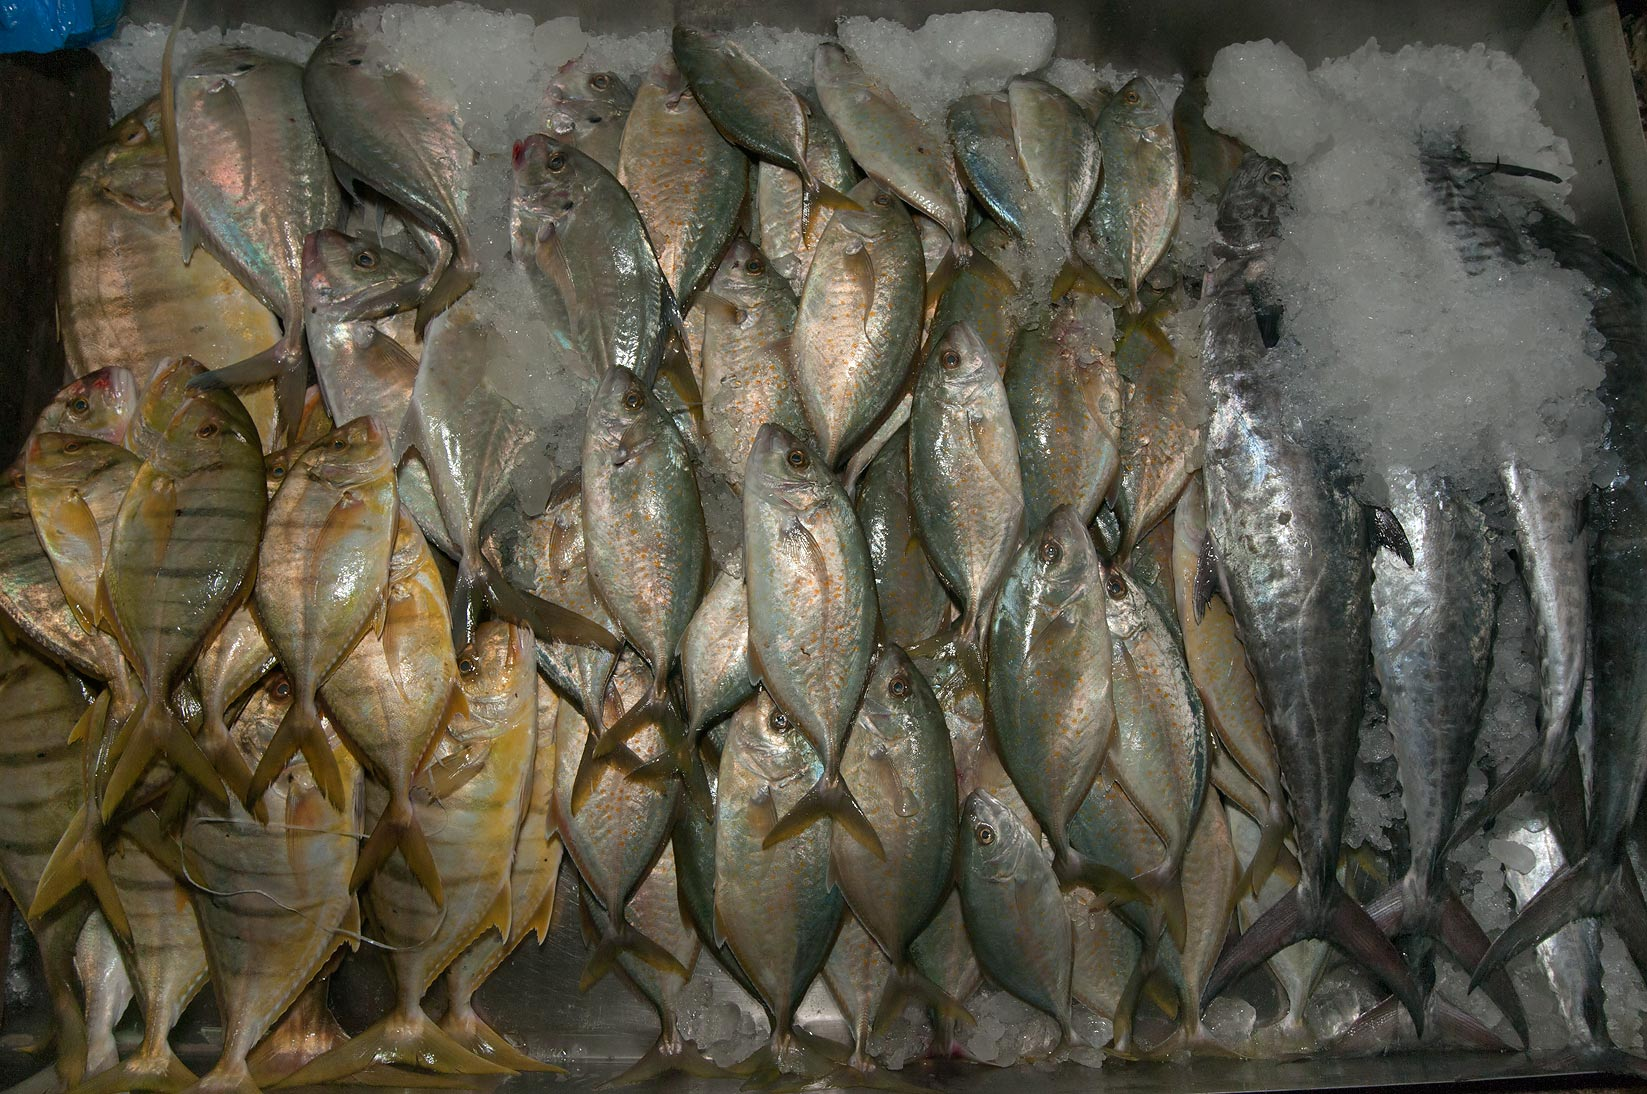 Fish on ice in Central Fish Market. Doha, Qatar